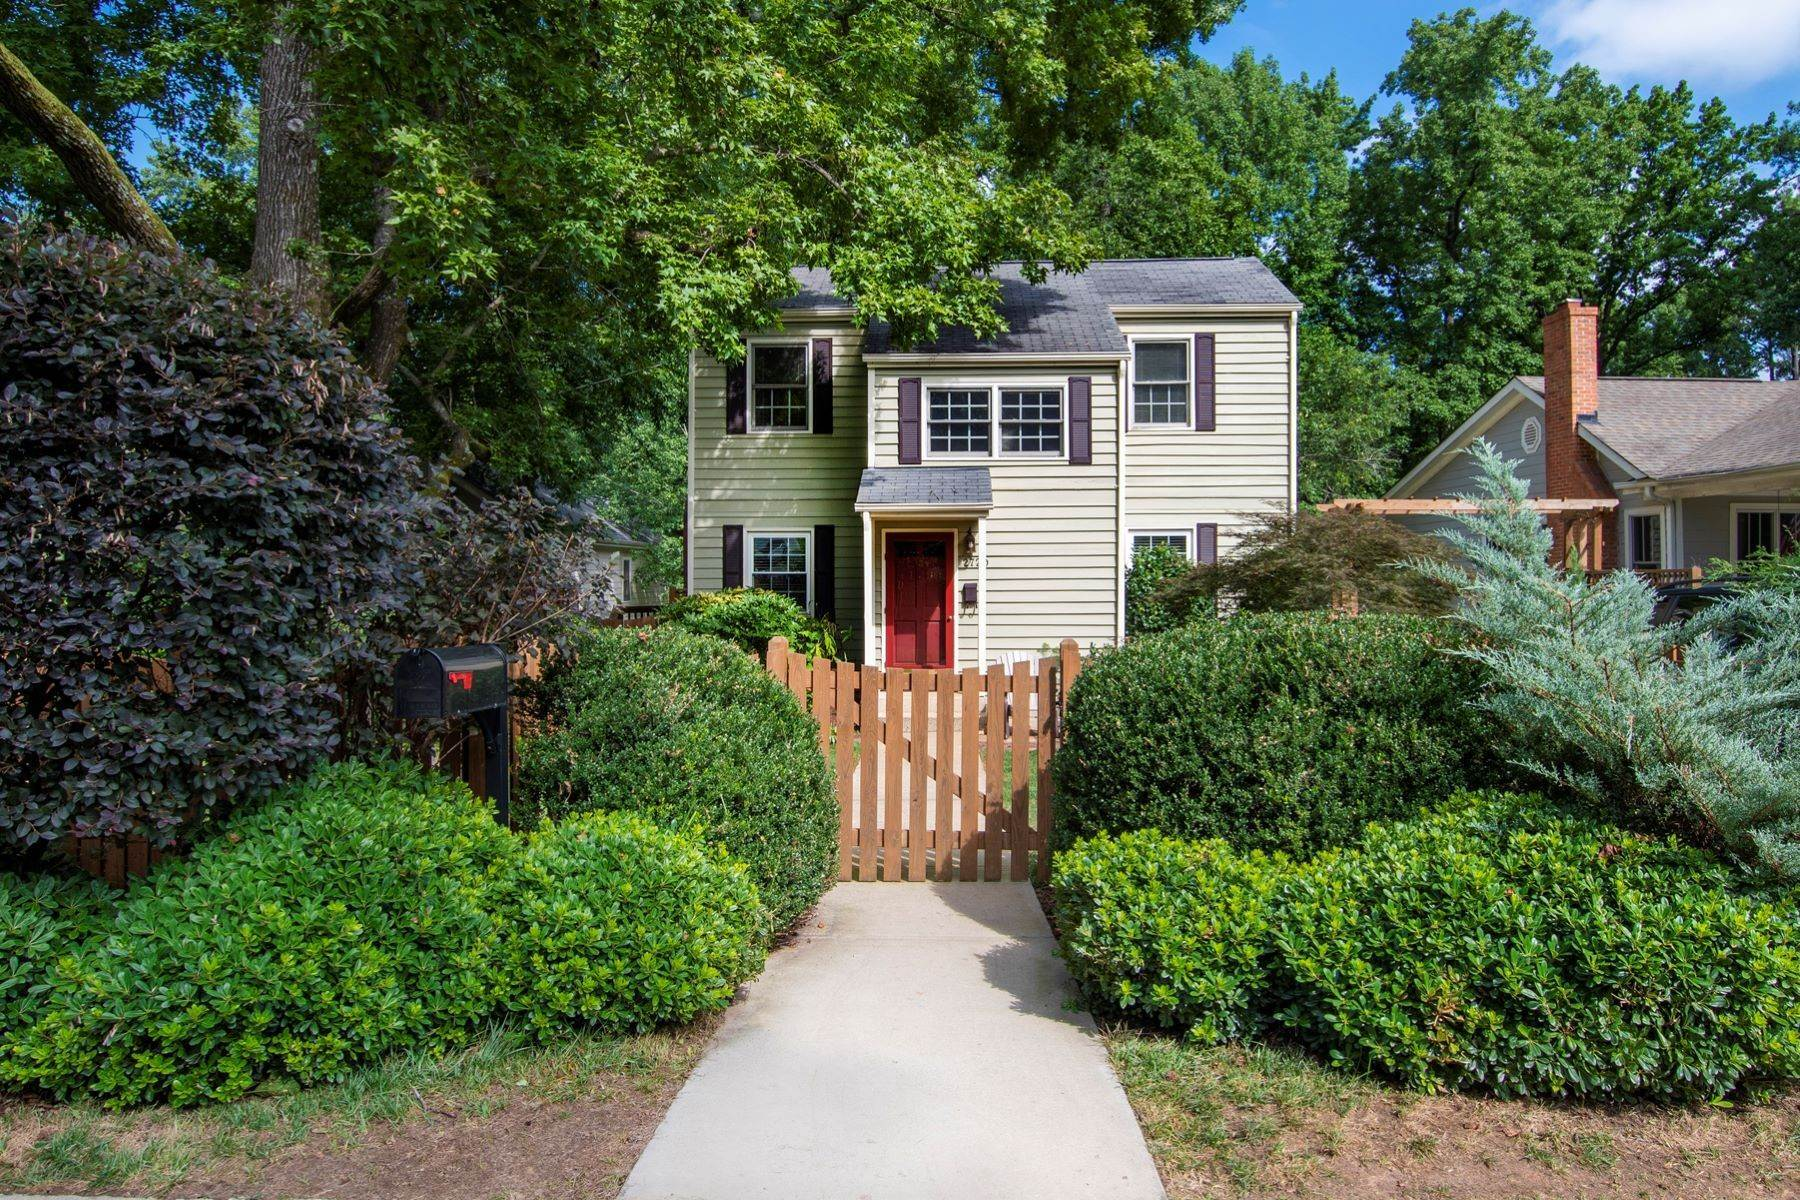 Single Family Homes for Sale at Wayland Heights Home 2720 Wayland Drive Raleigh, North Carolina 27608 United States